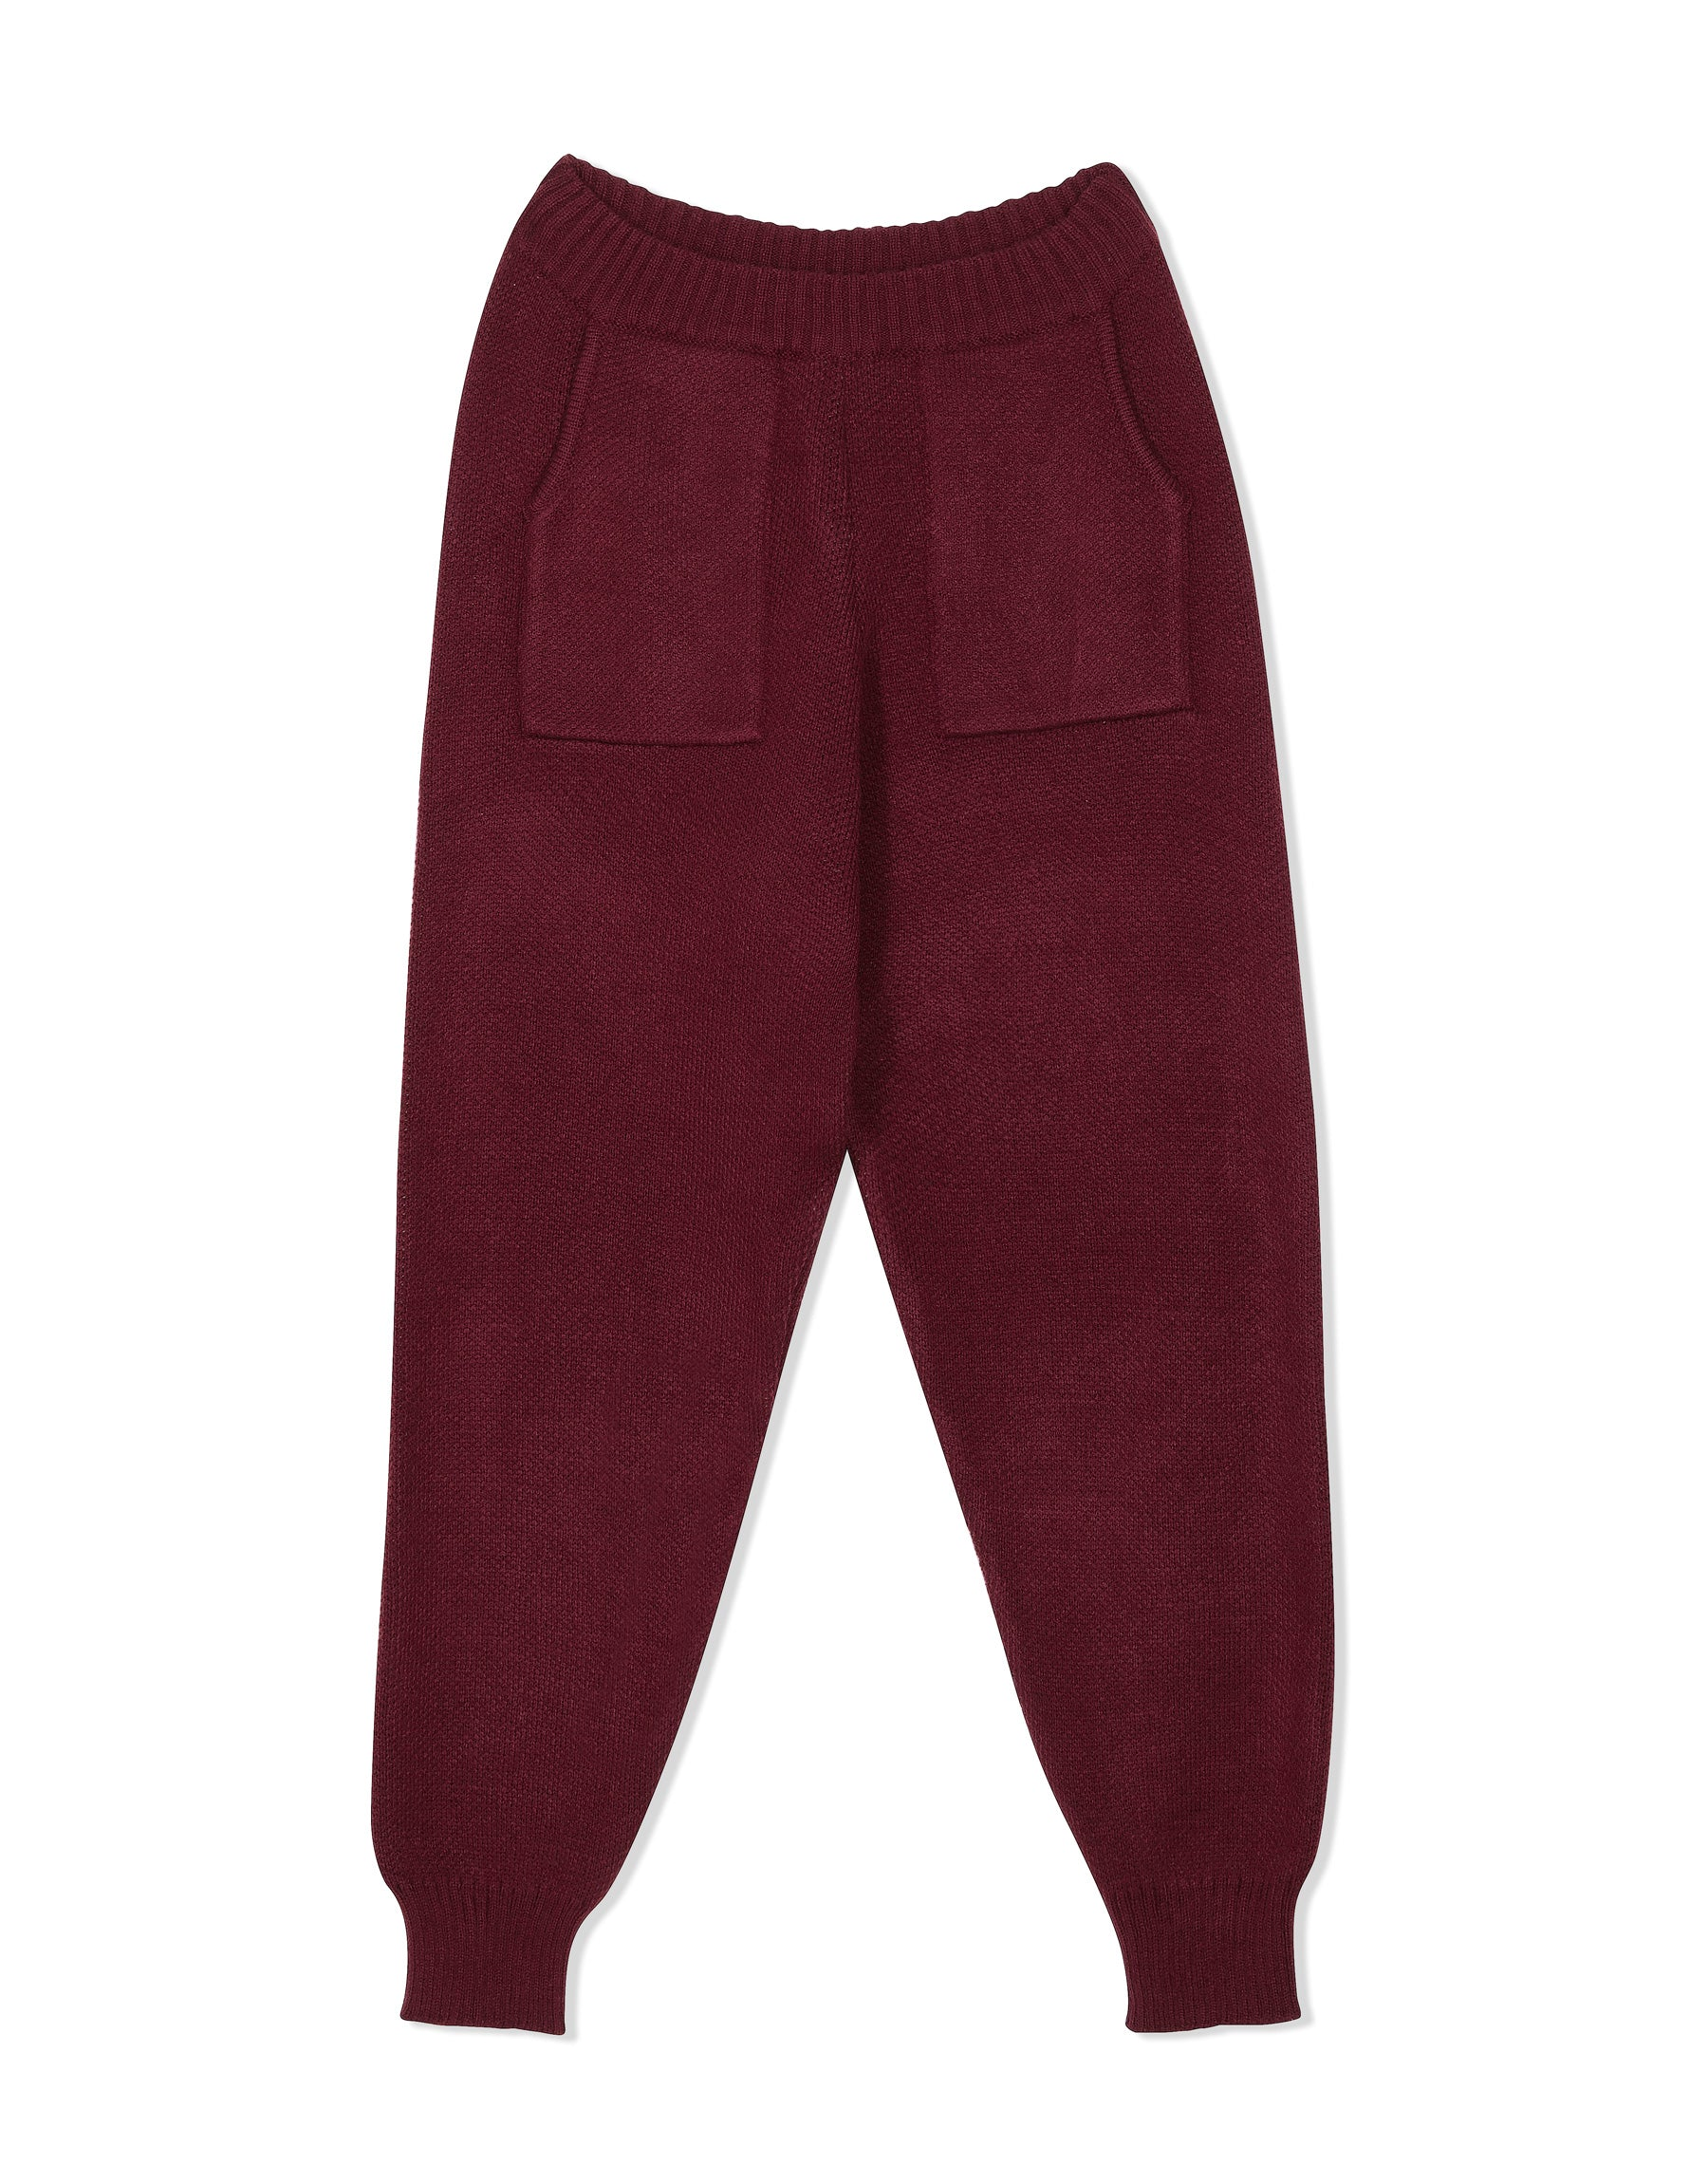 Knitwear from KVDWKND, Track Pants in Burgundy. New by Kat van Duinen.